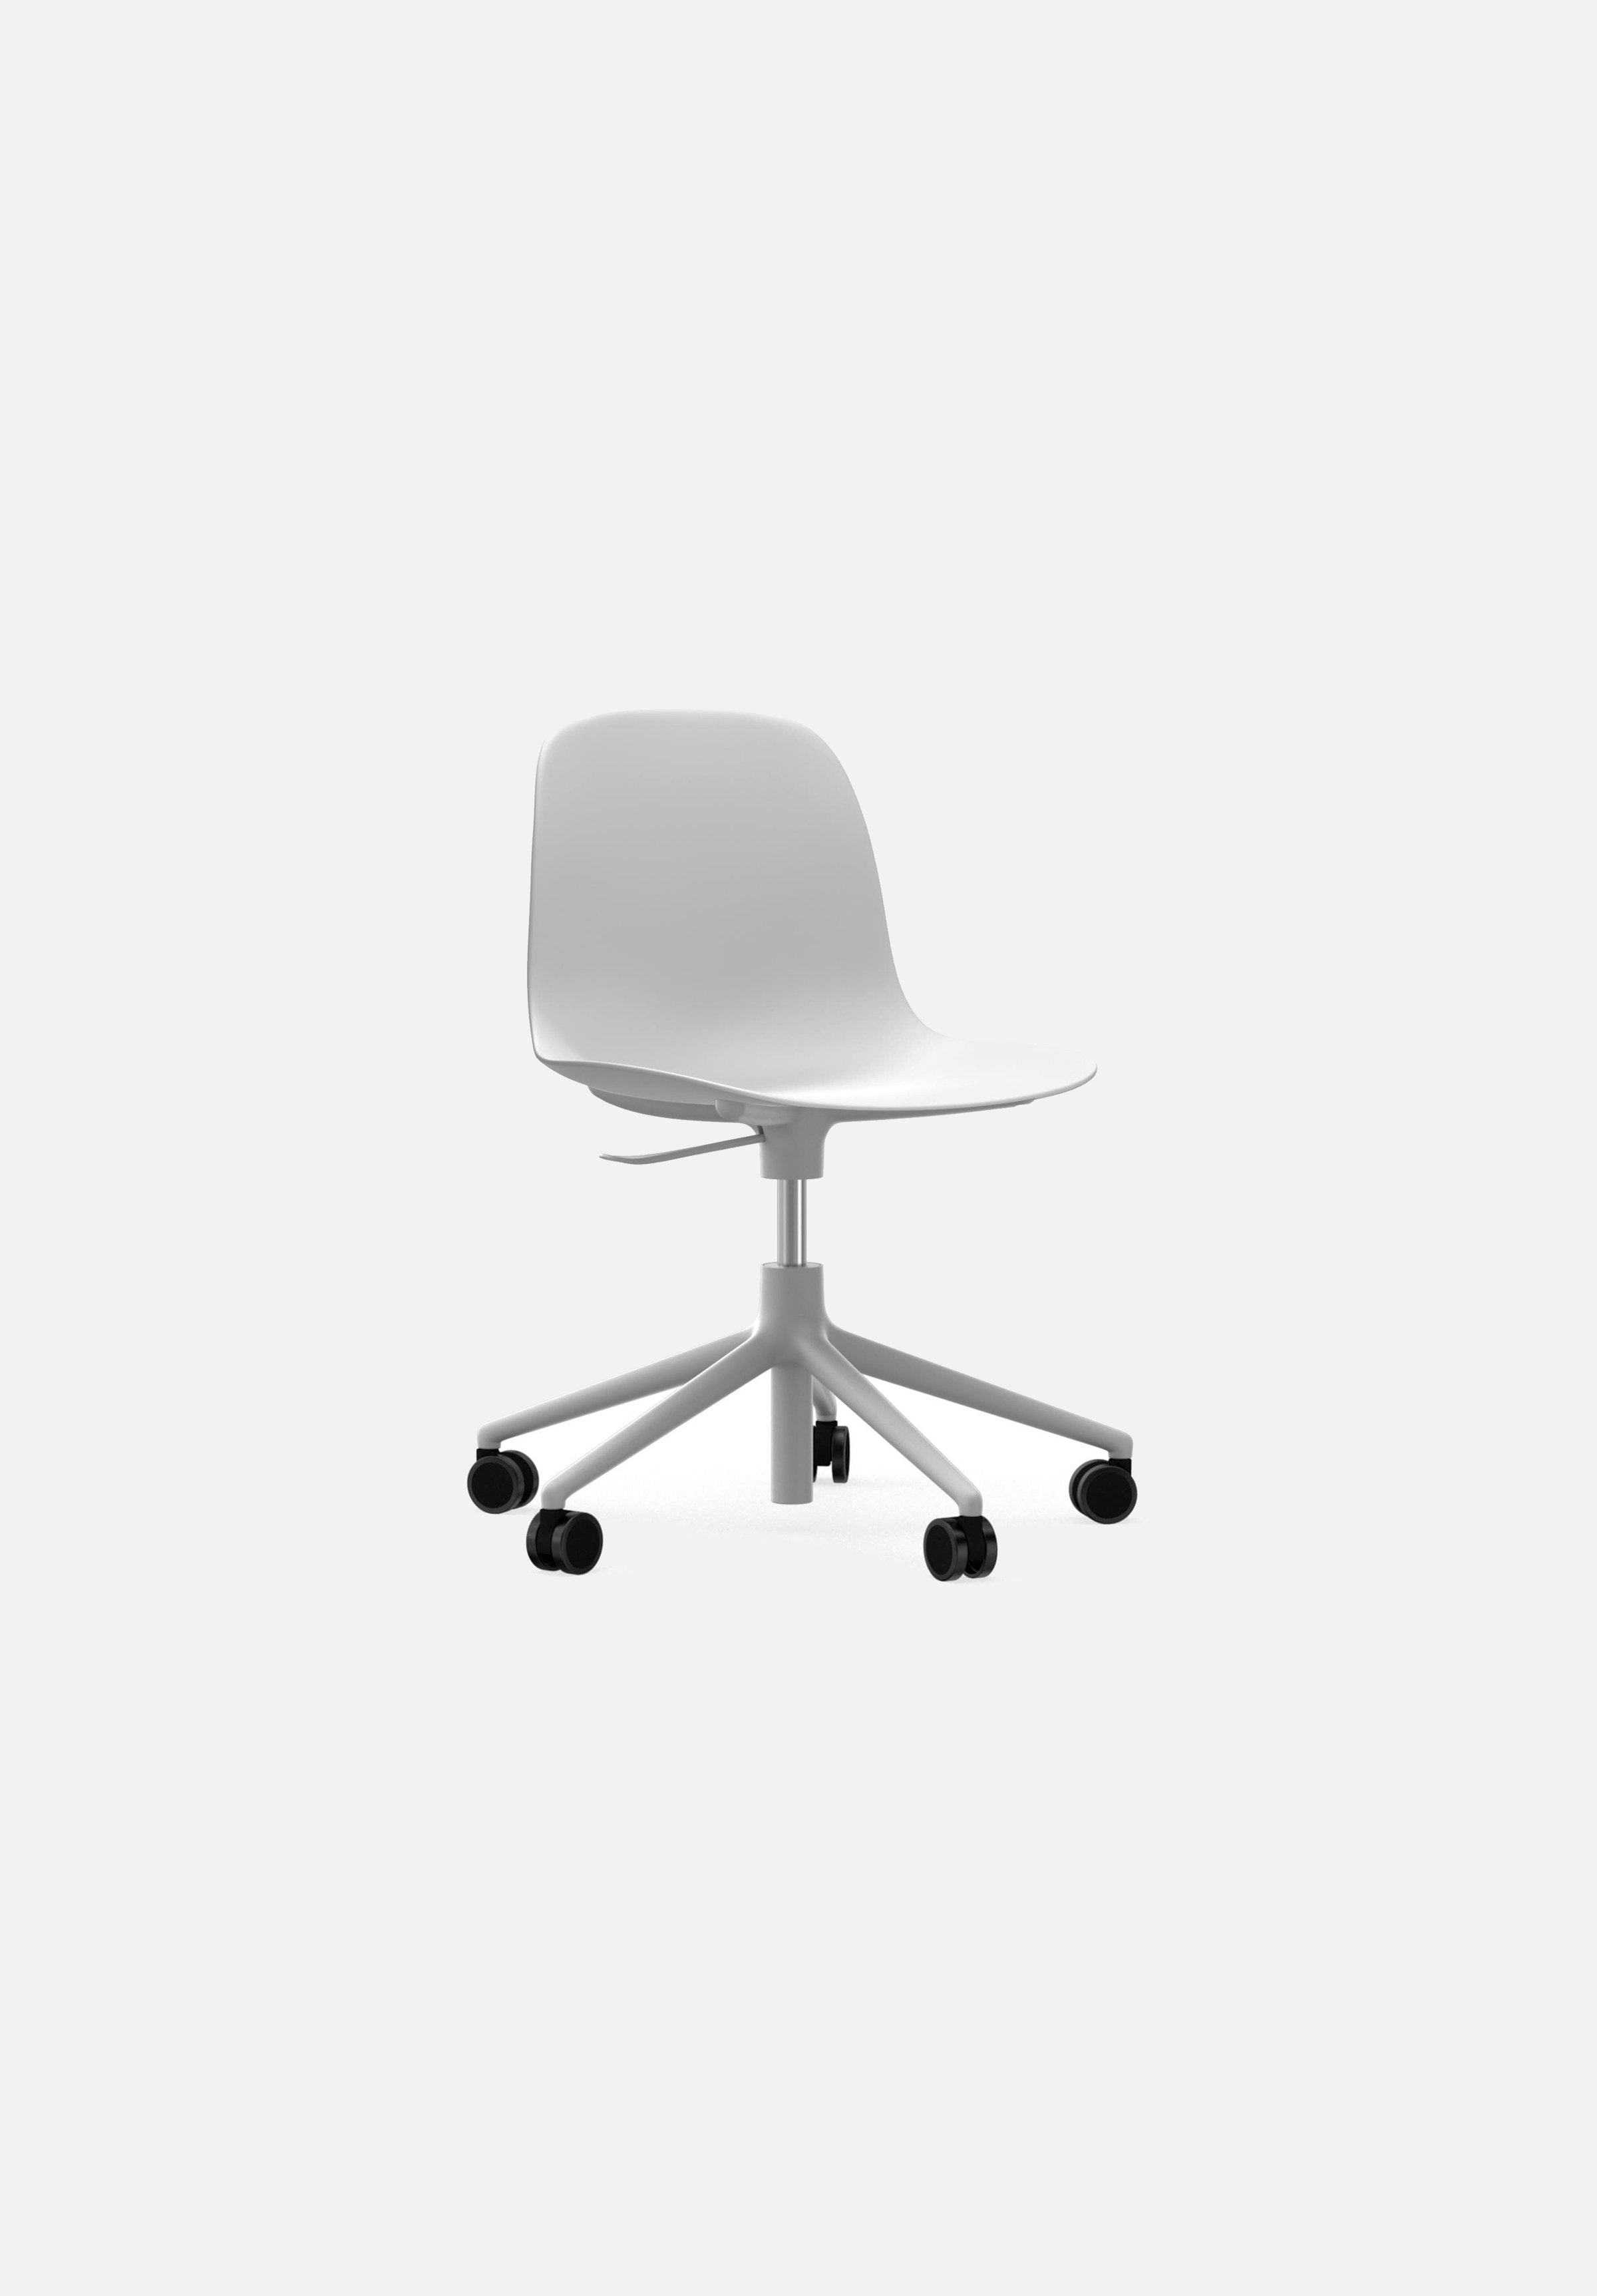 Form Chair — Swivel Gaslift-Simon Legald-Normann Copenhagen-White-White Aluminum-Average-canada-design-store-danish-denmark-furniture-interior